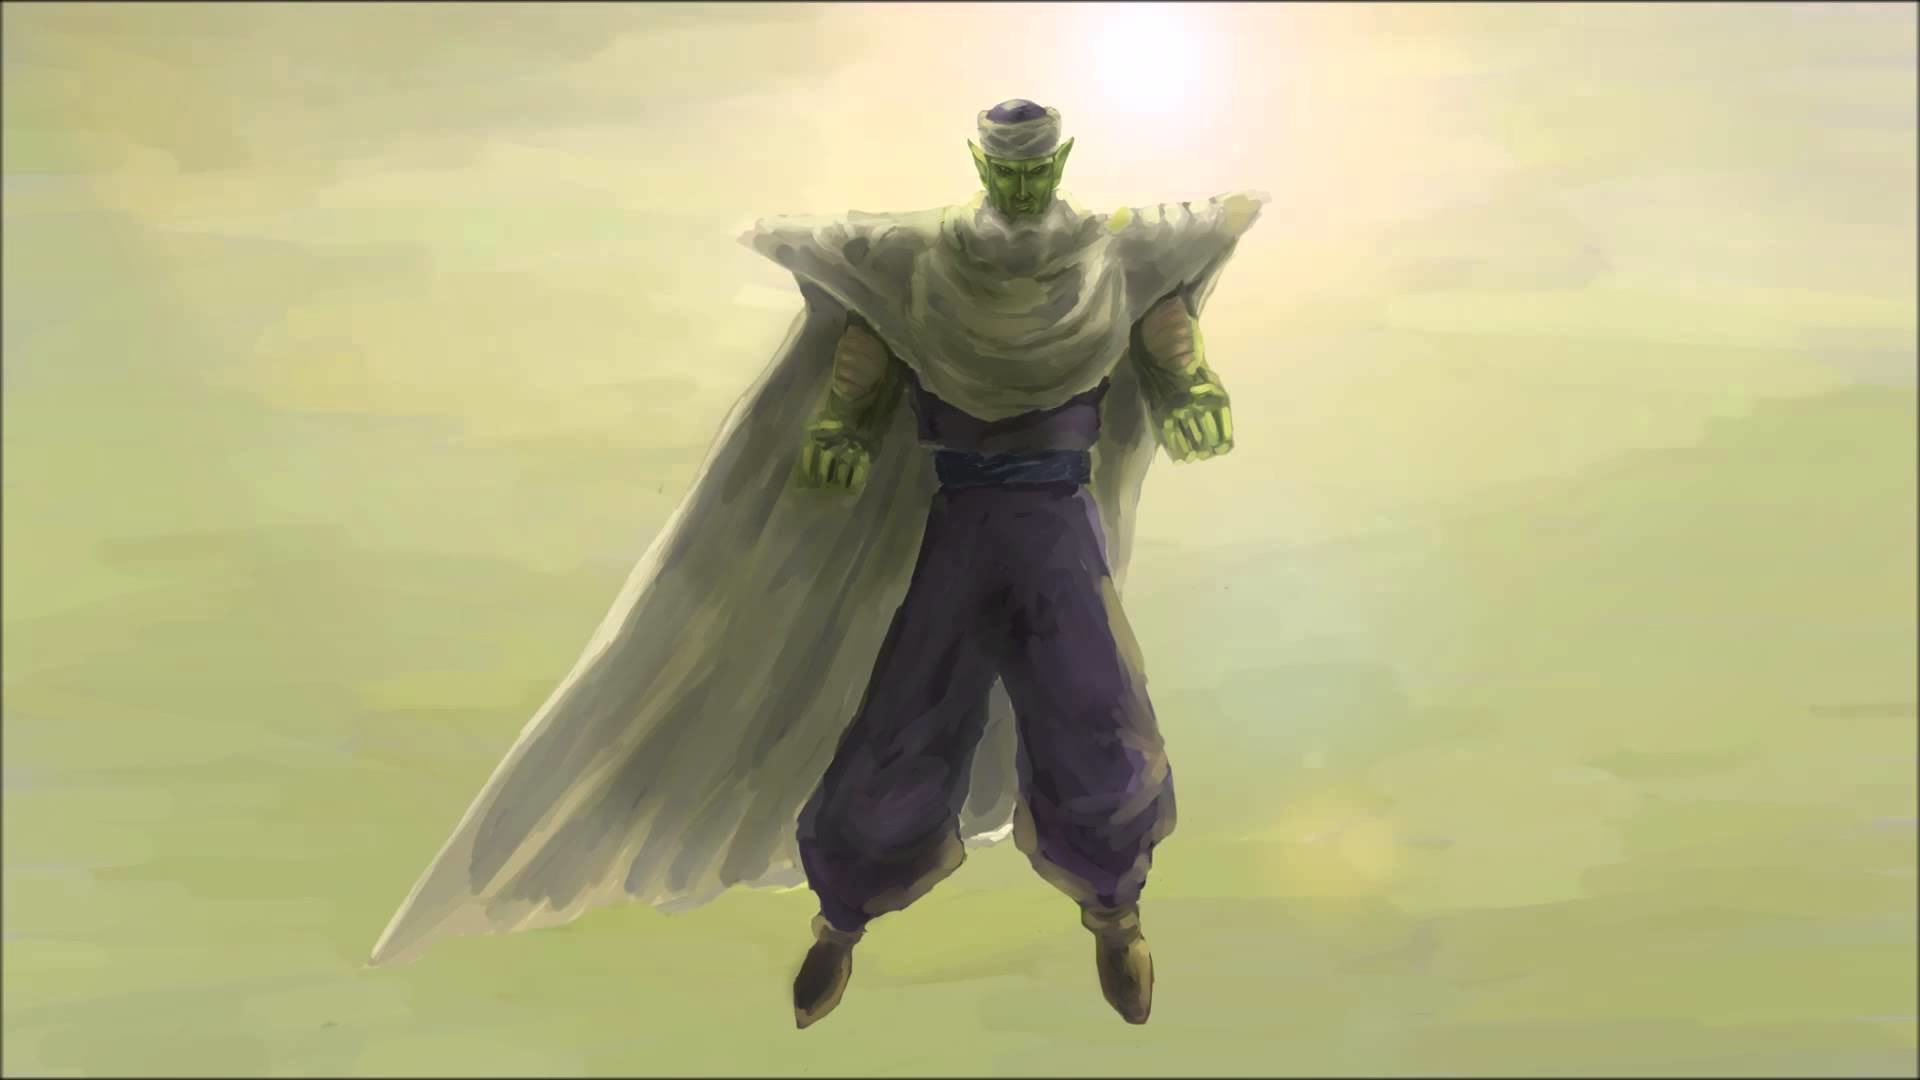 Dragon Ball Z Piccolo Wallpaper 68 Images